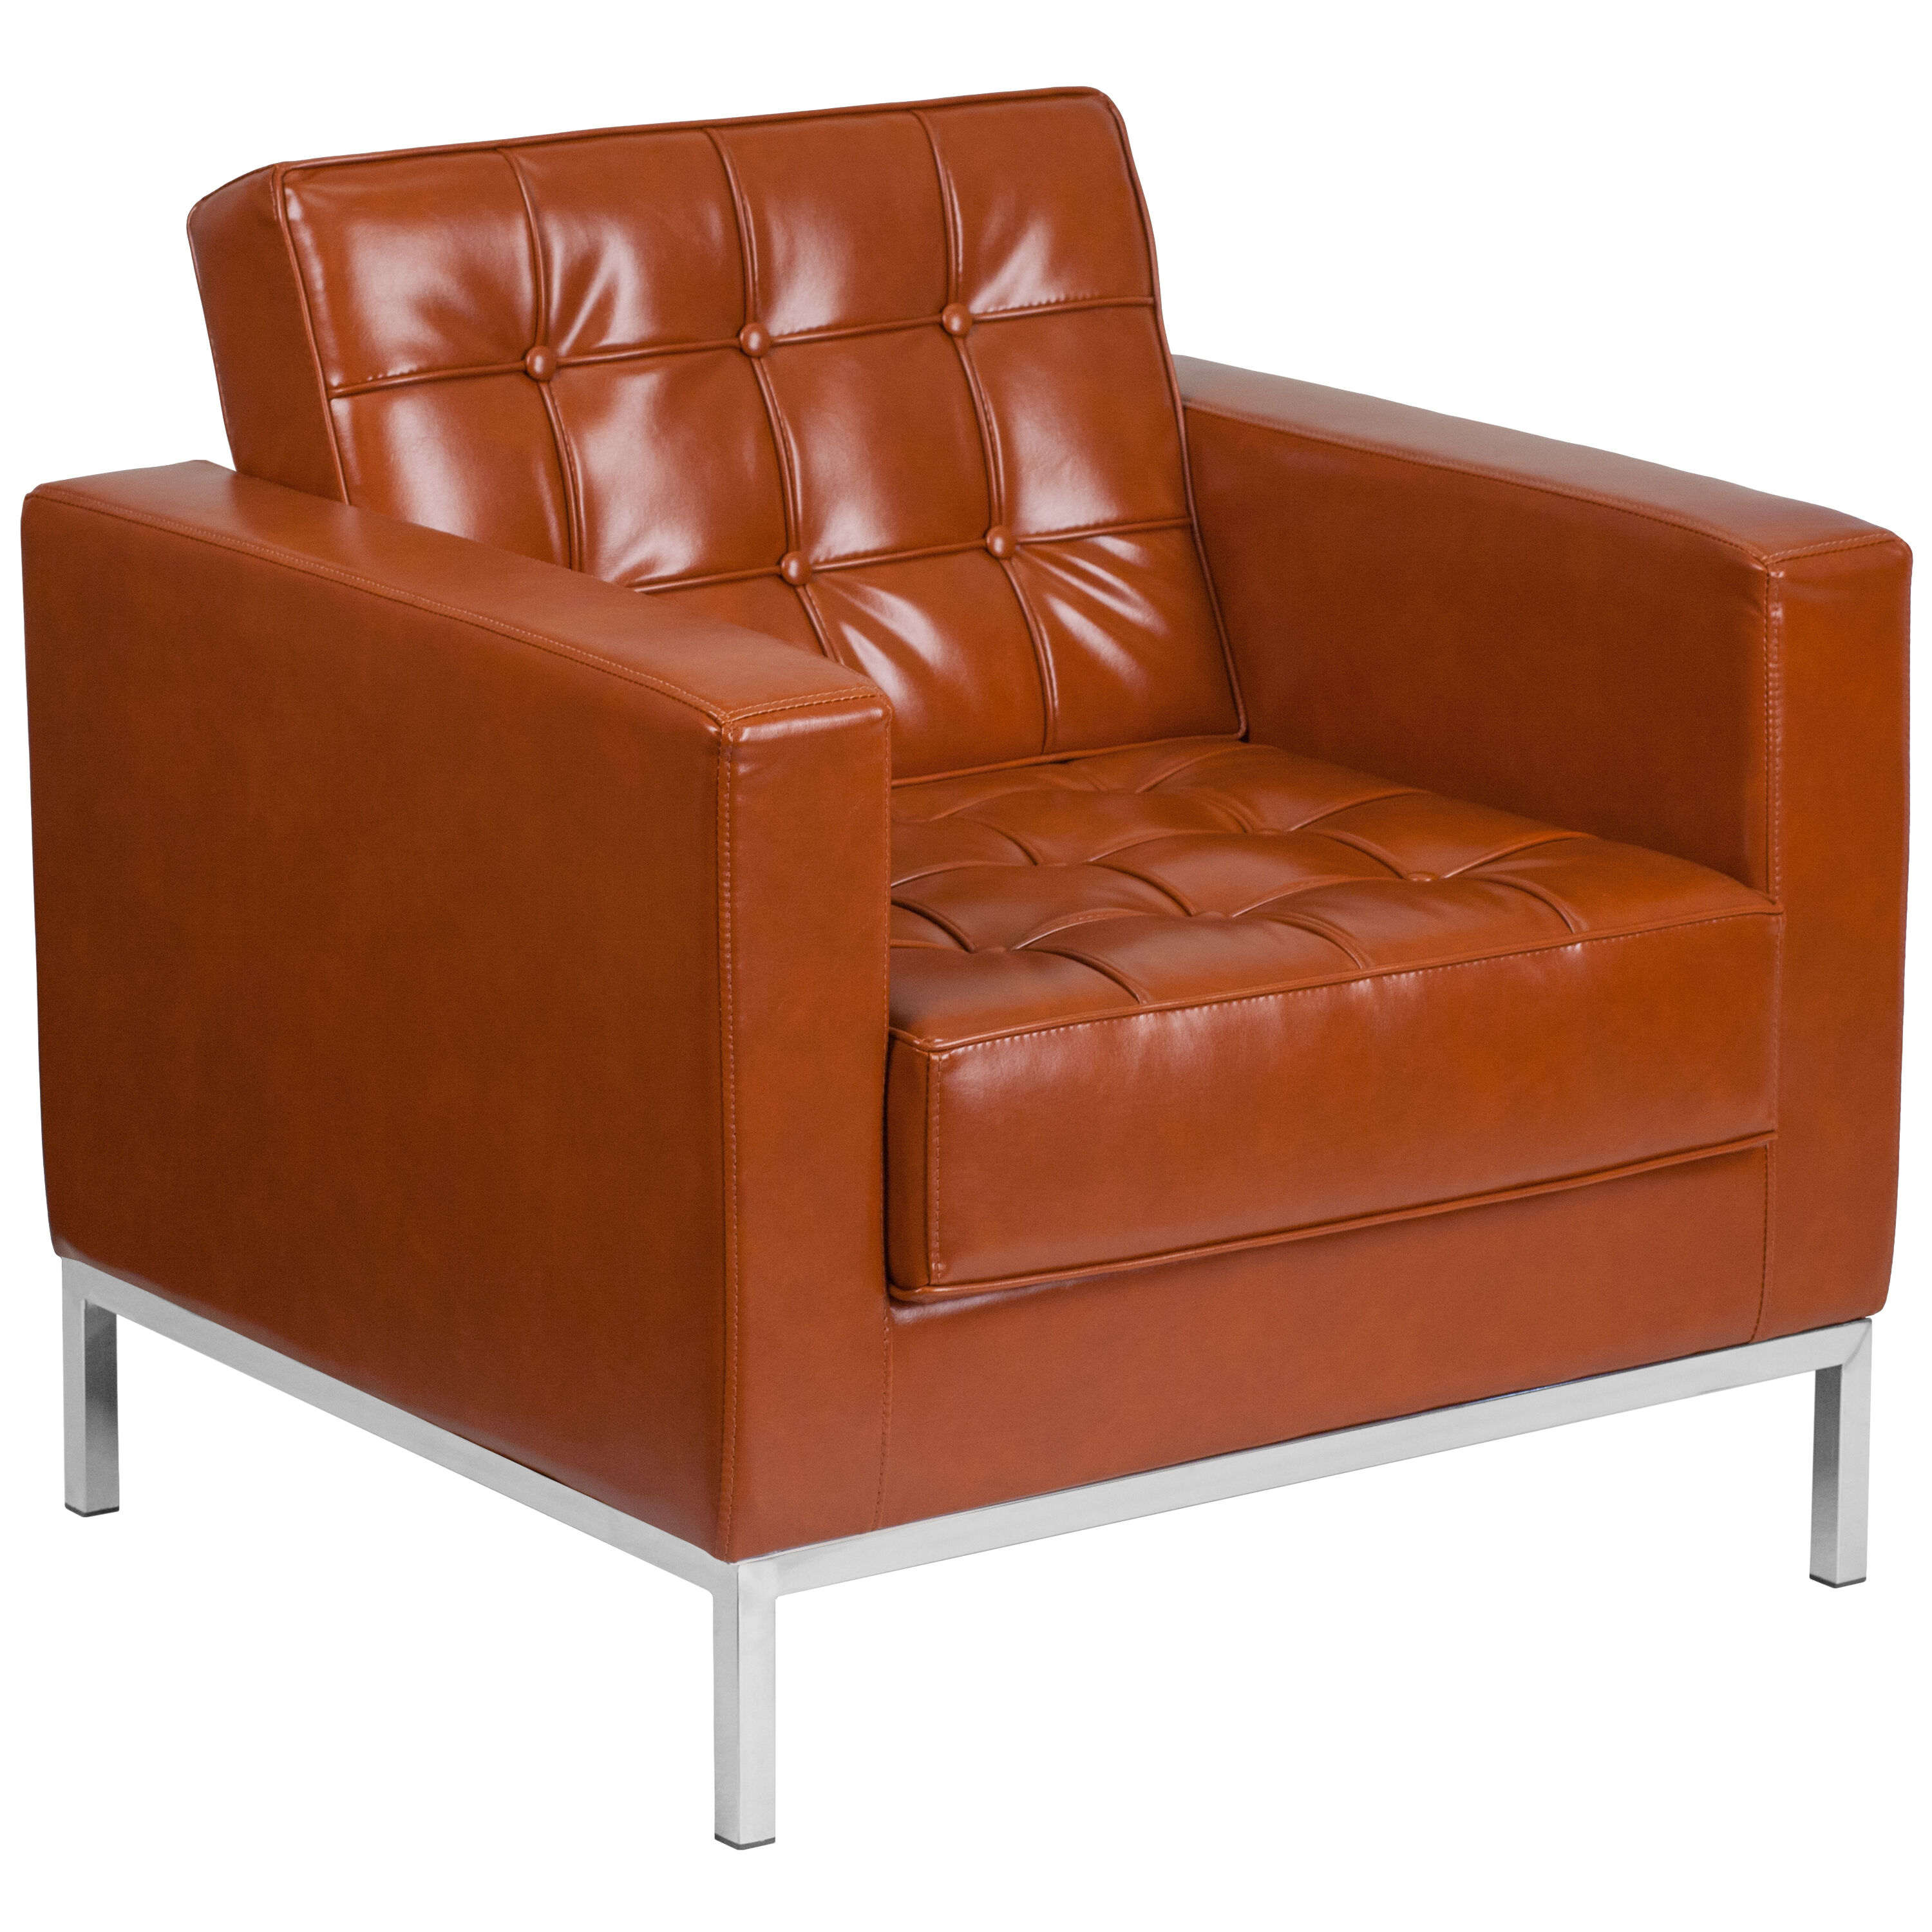 hercules lacey series cognac leather chair with stainless steel frame